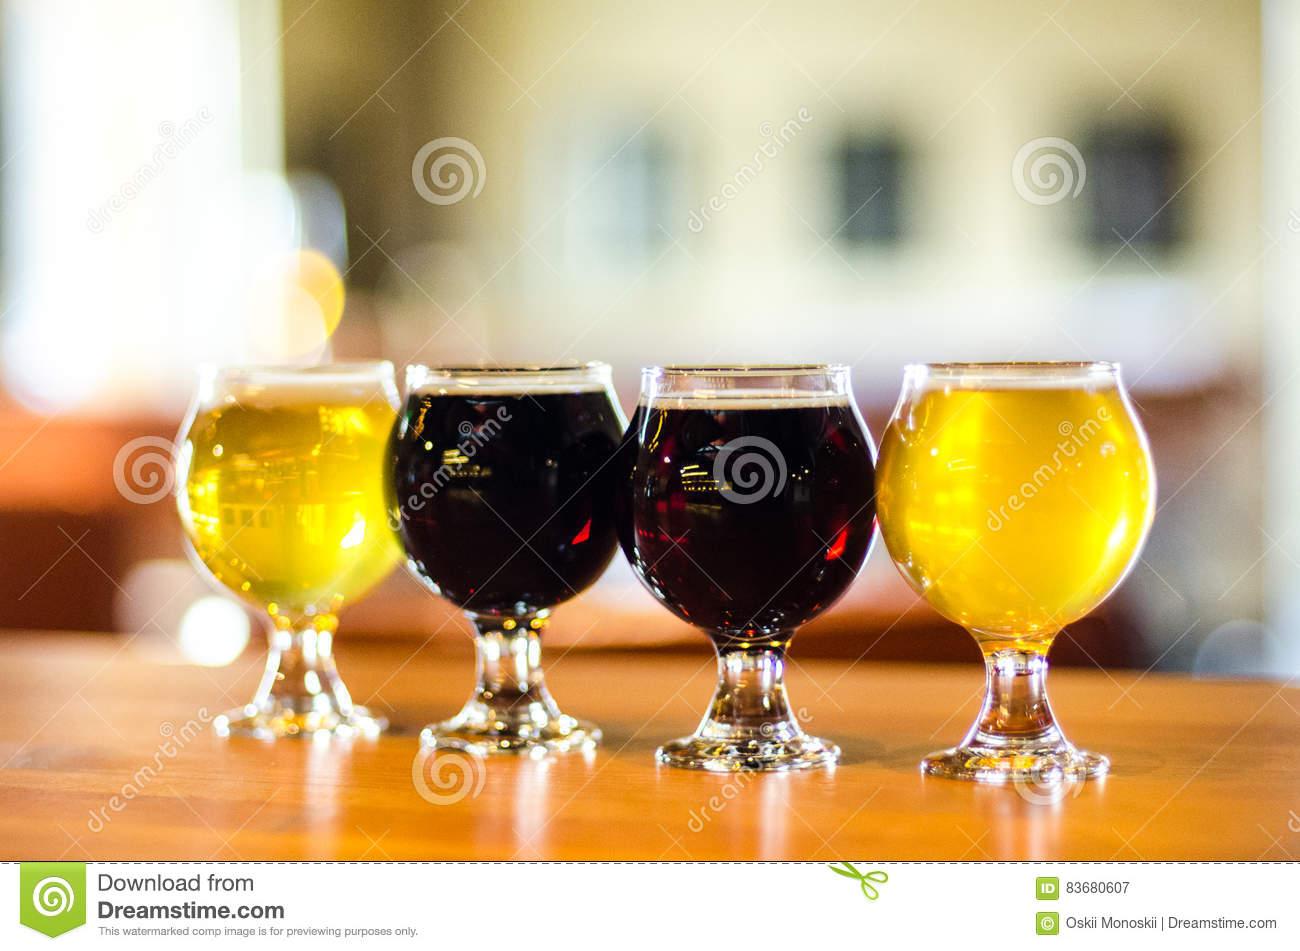 Craft beer flight close-up